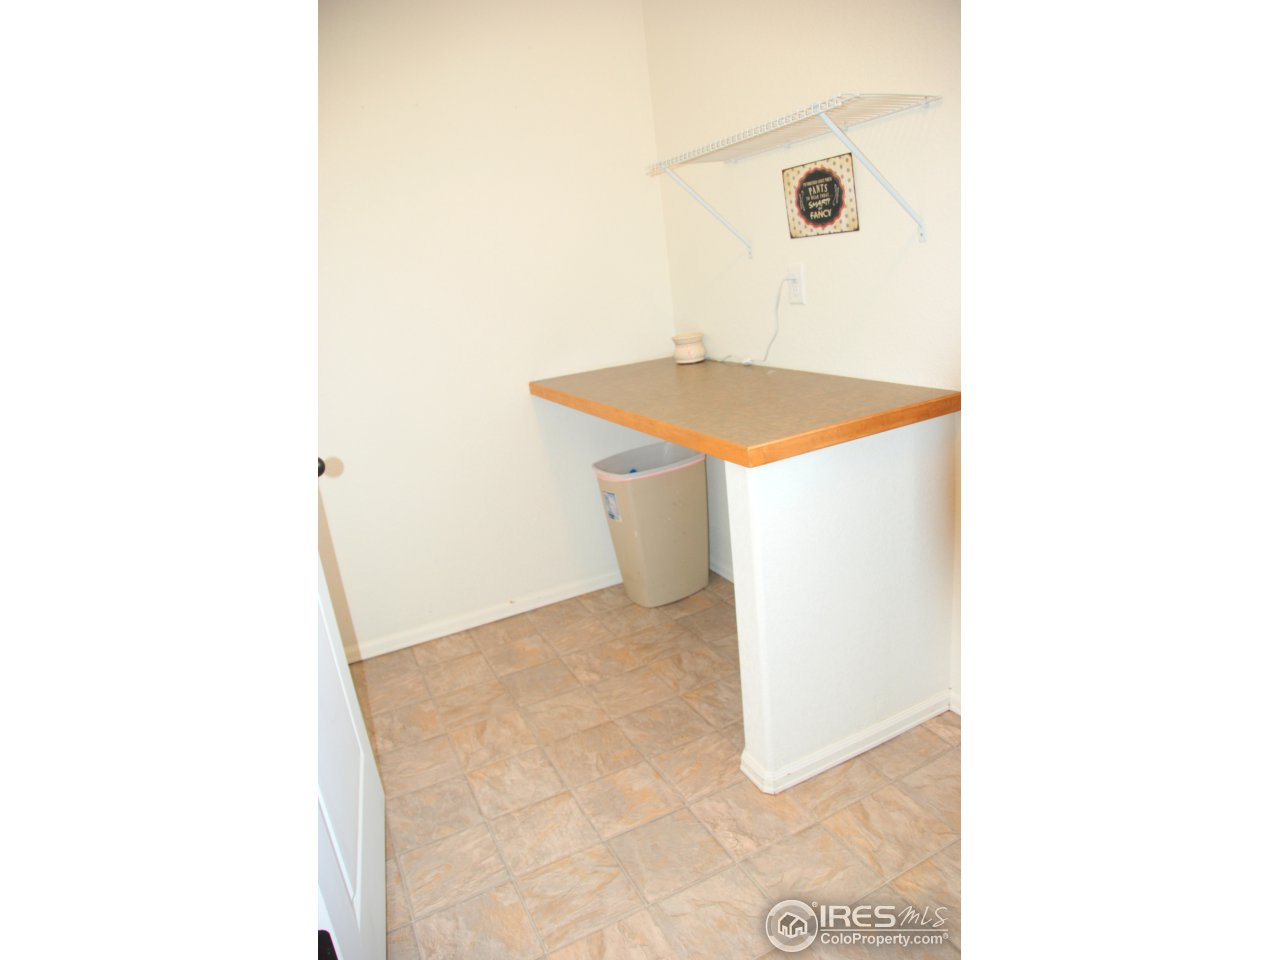 Laundry room, a place to sort and fold